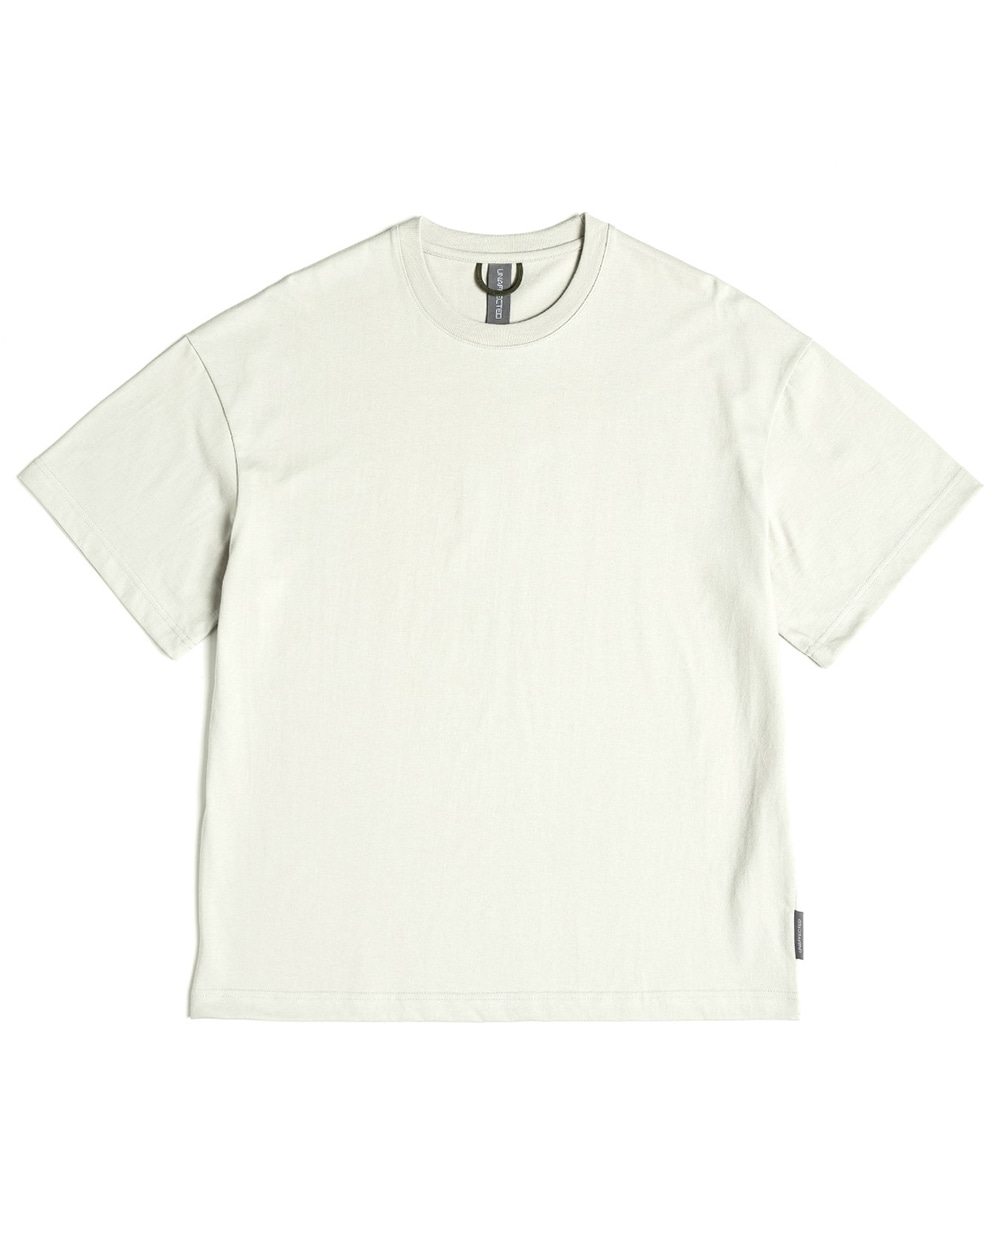 언어펙티드 LOGO LABEL T-SHIRT (Light grey)